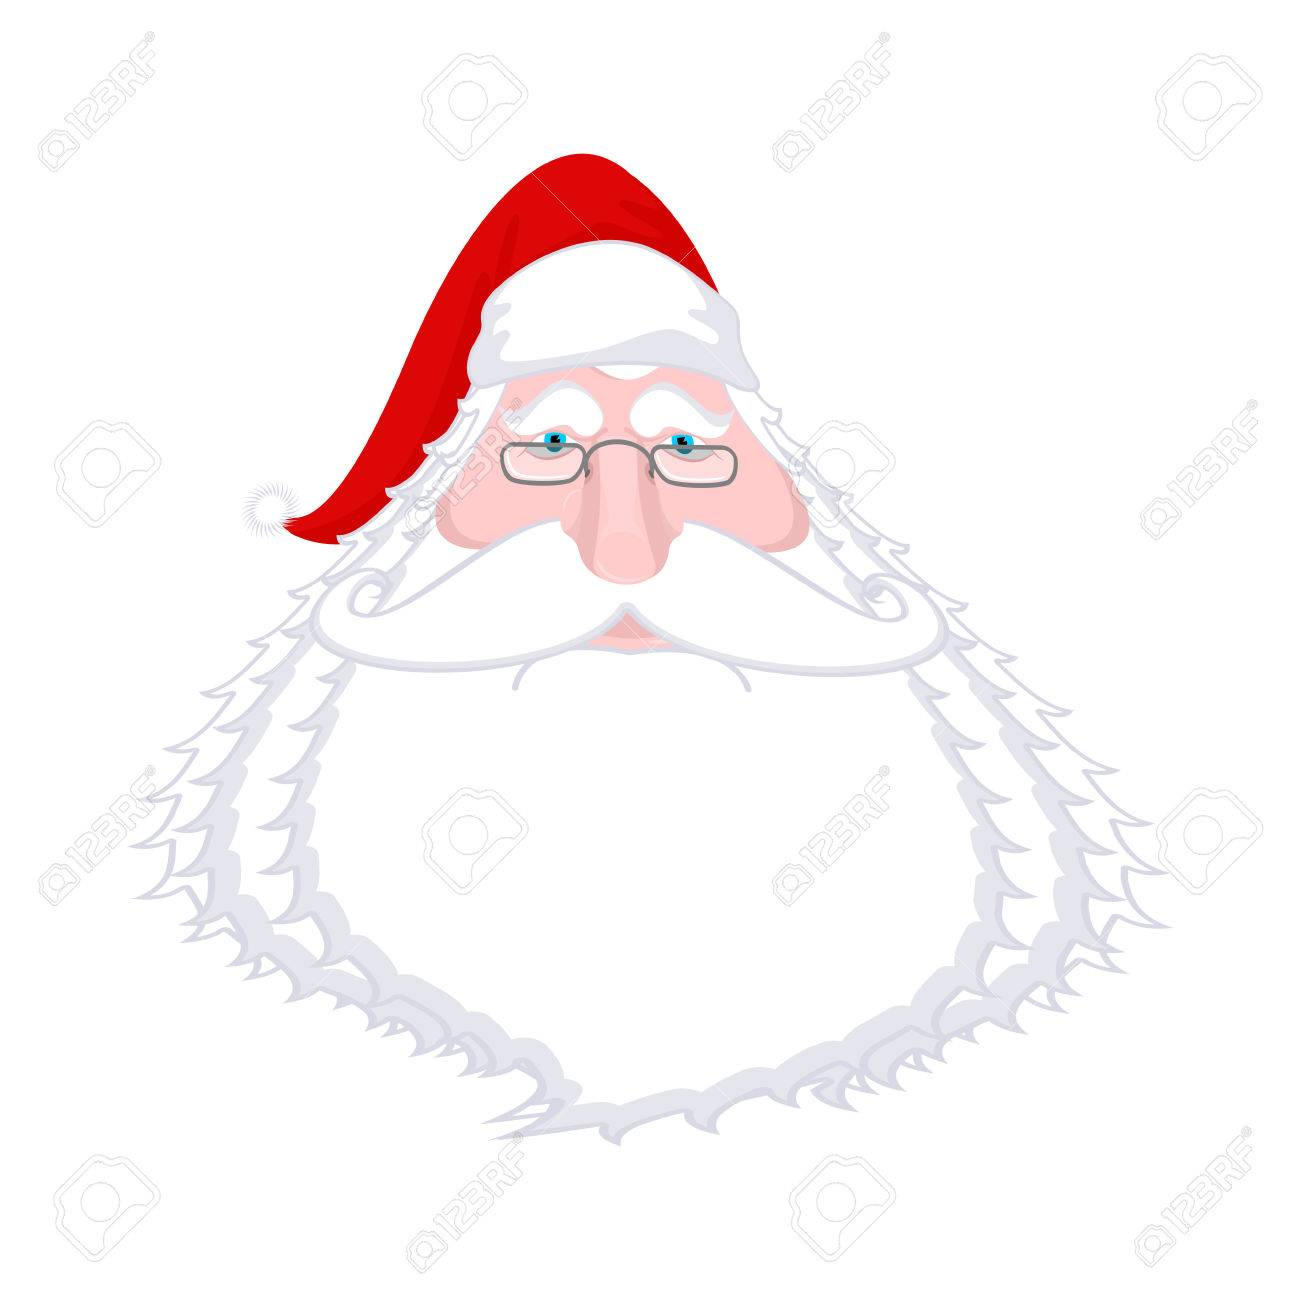 Santa Claus Face Isolated Christmas Grandpa With White Beard